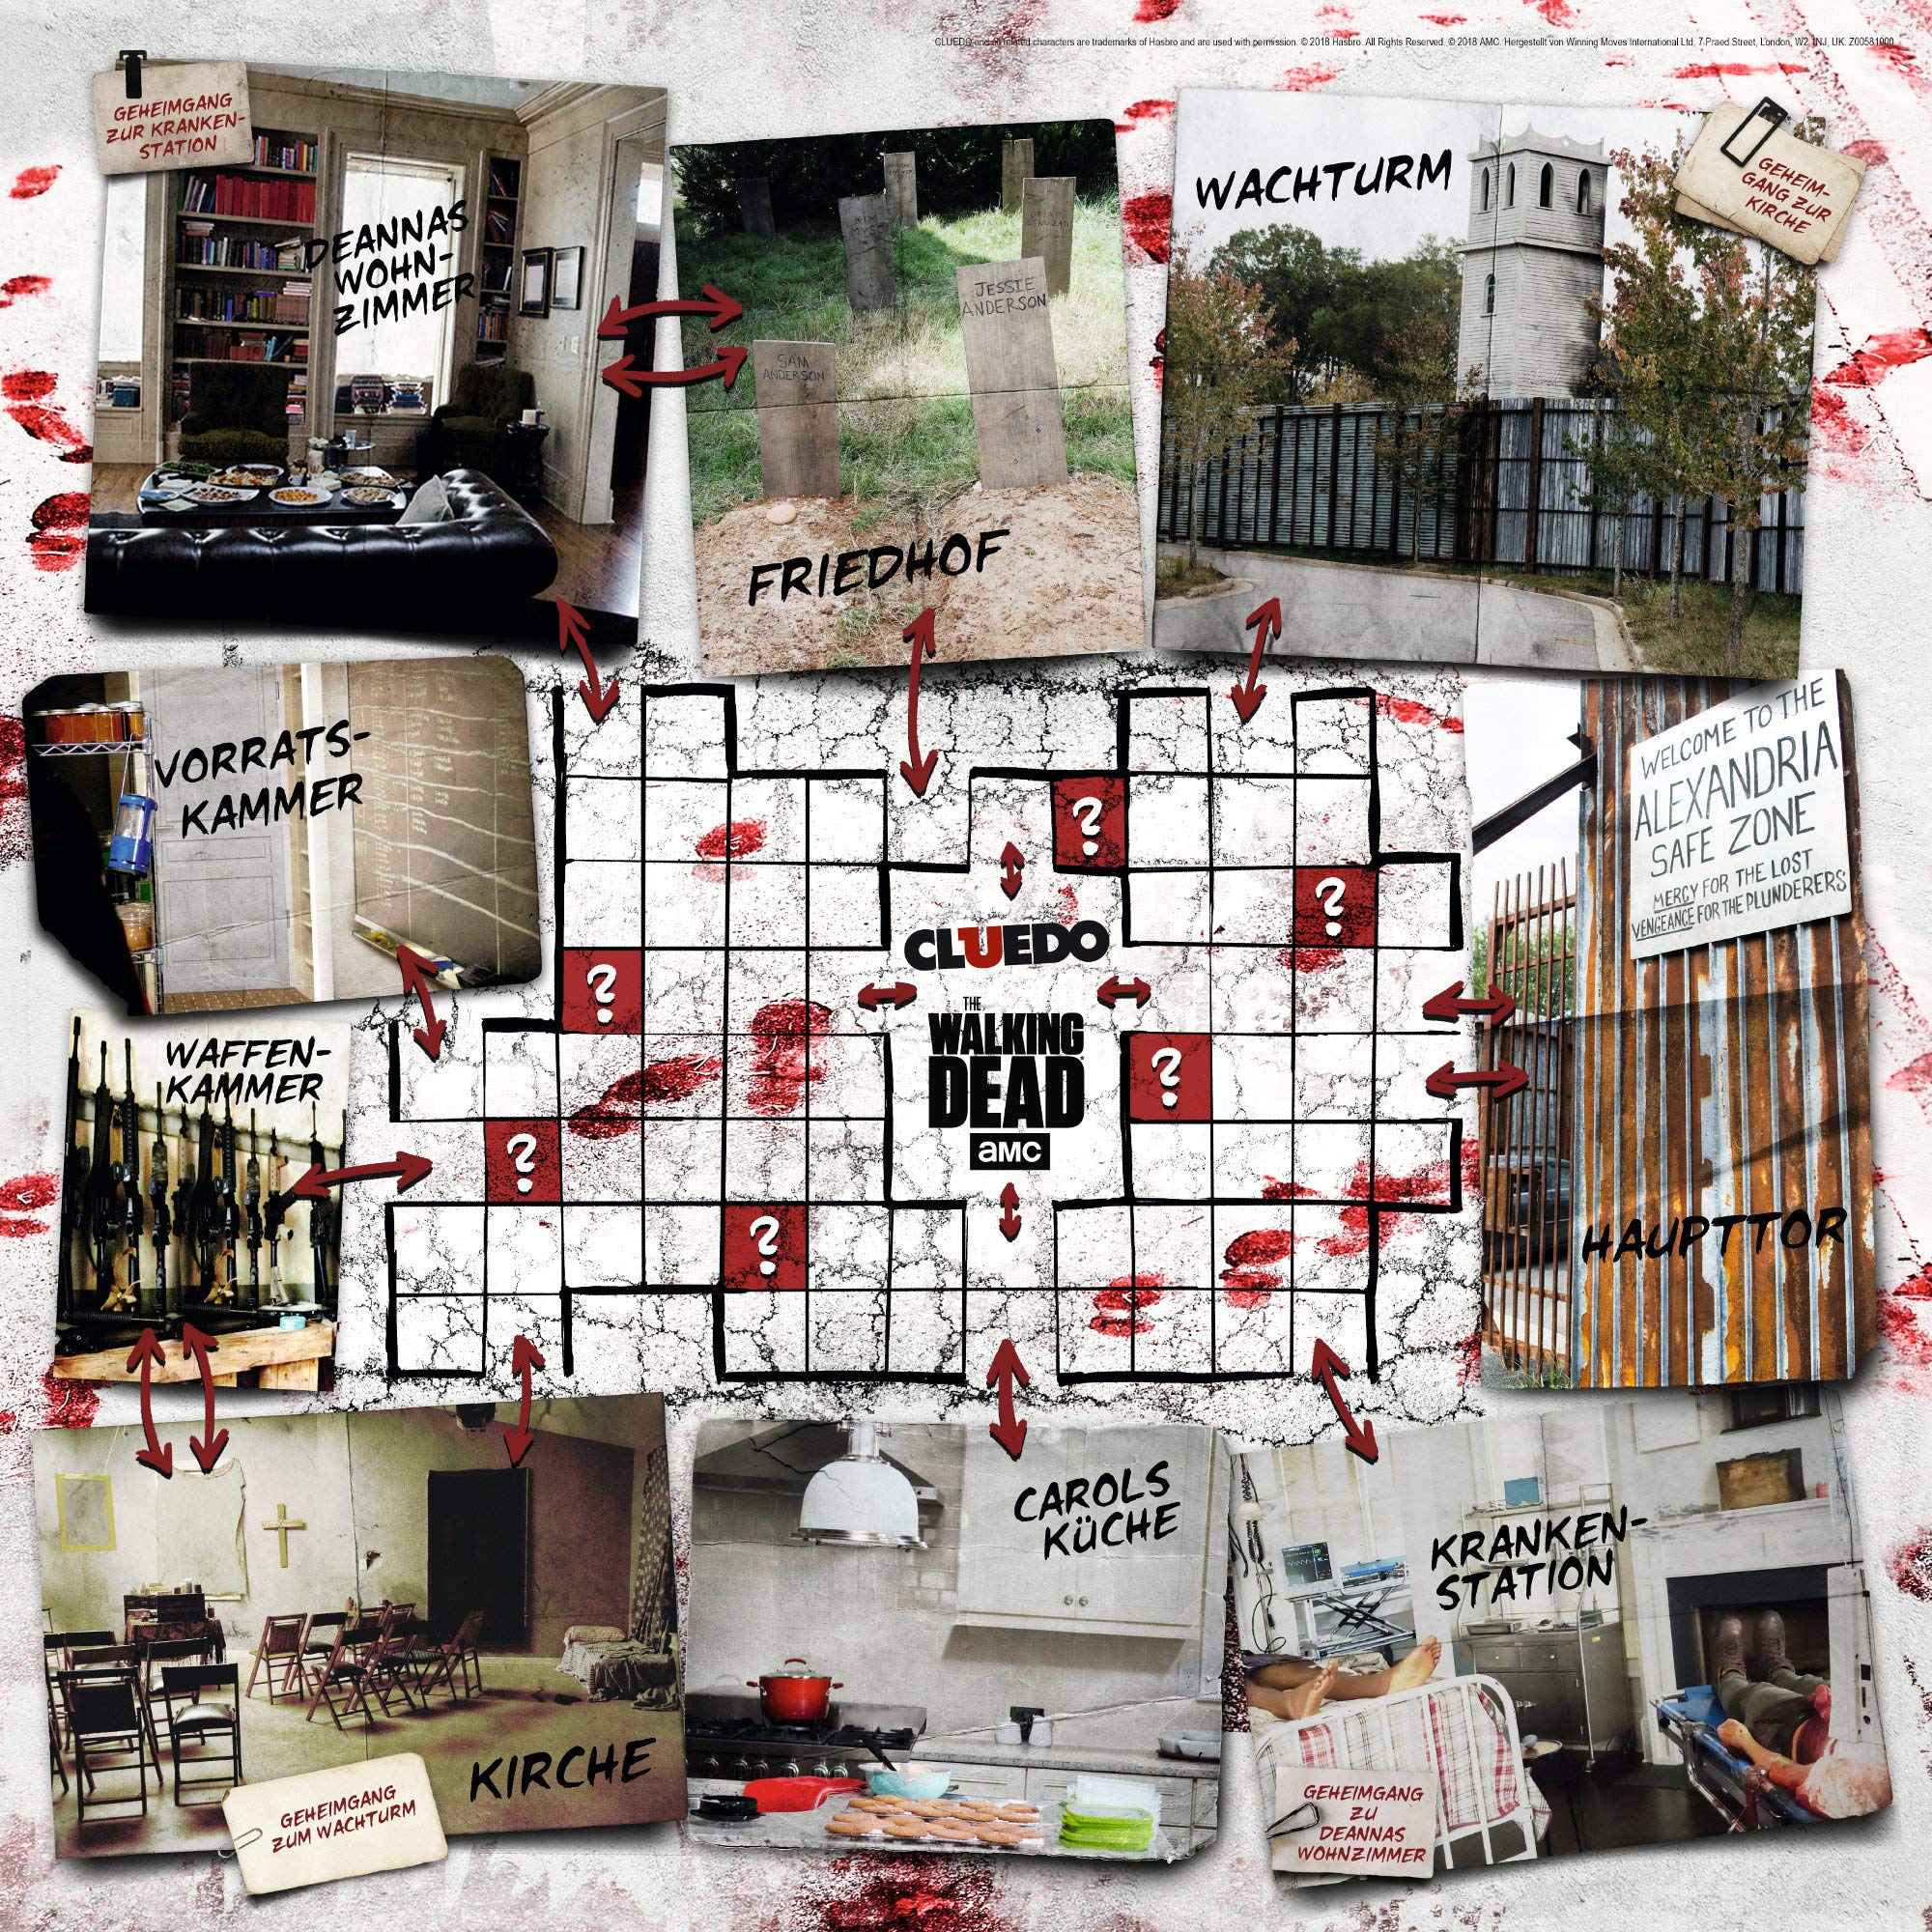 Cluedo The Walking Dead AMC: Amazon.es: Winning, Moves: Libros en idiomas extranjeros